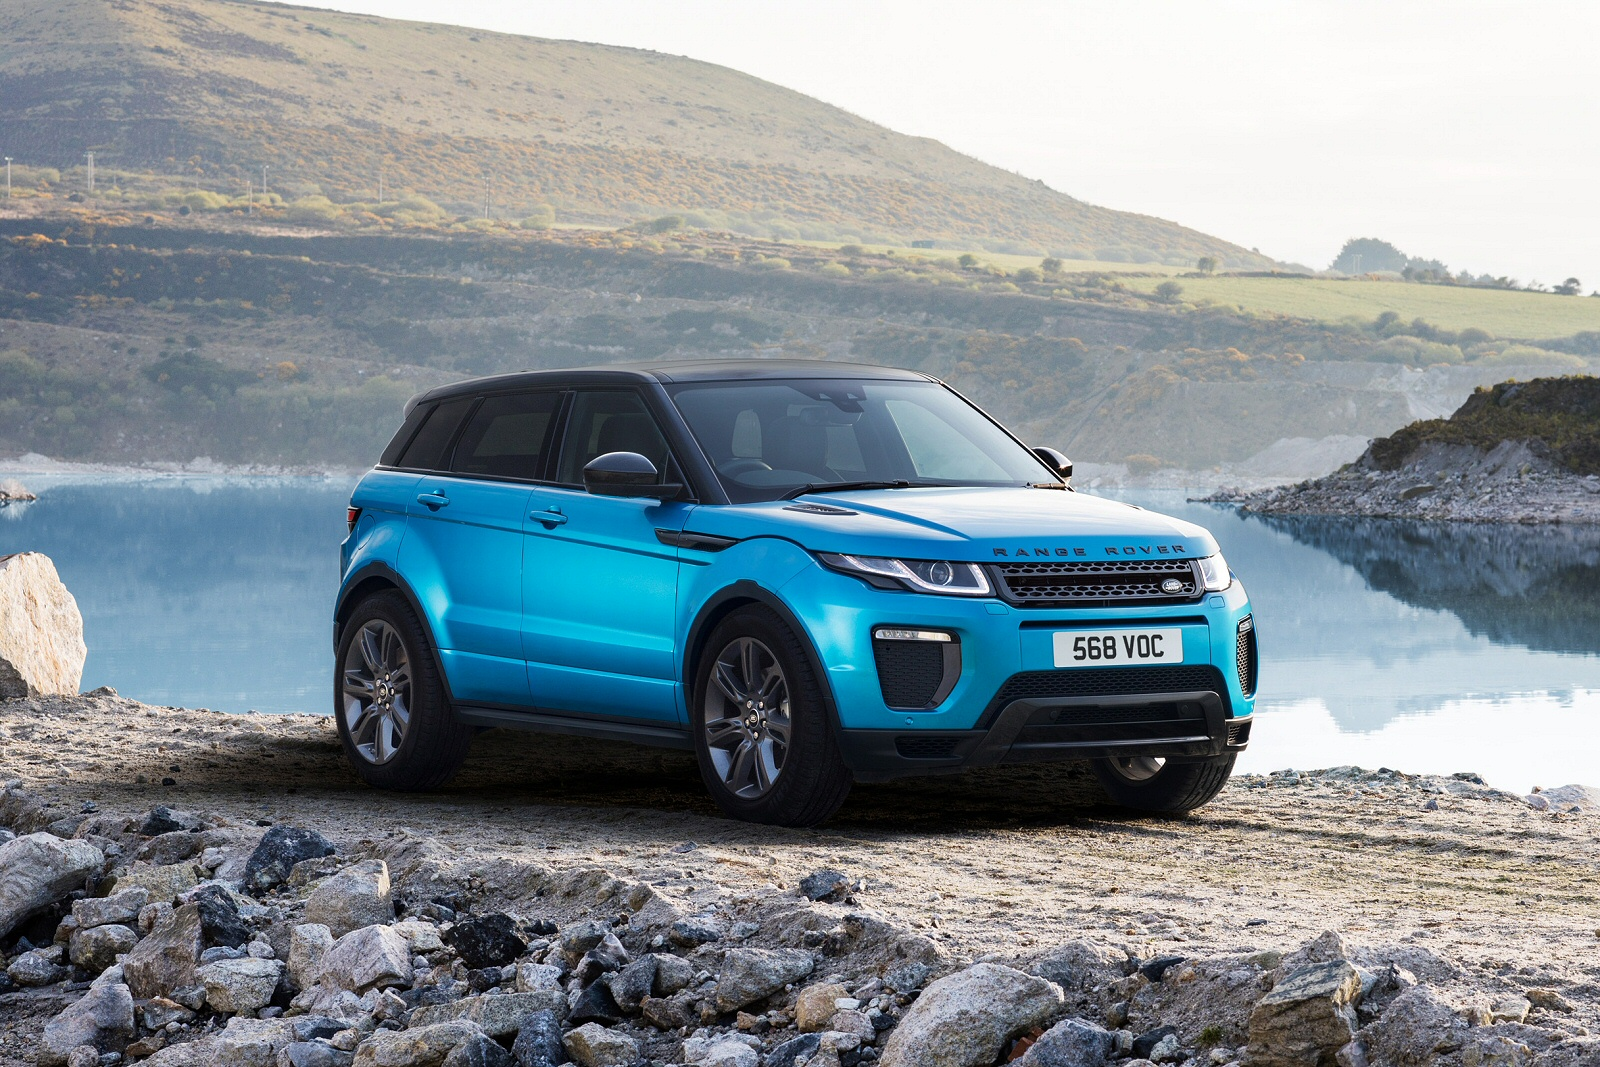 new land rover range rover evoque 2 0 td4 se 5dr diesel hatchback for sale farnell land rover. Black Bedroom Furniture Sets. Home Design Ideas